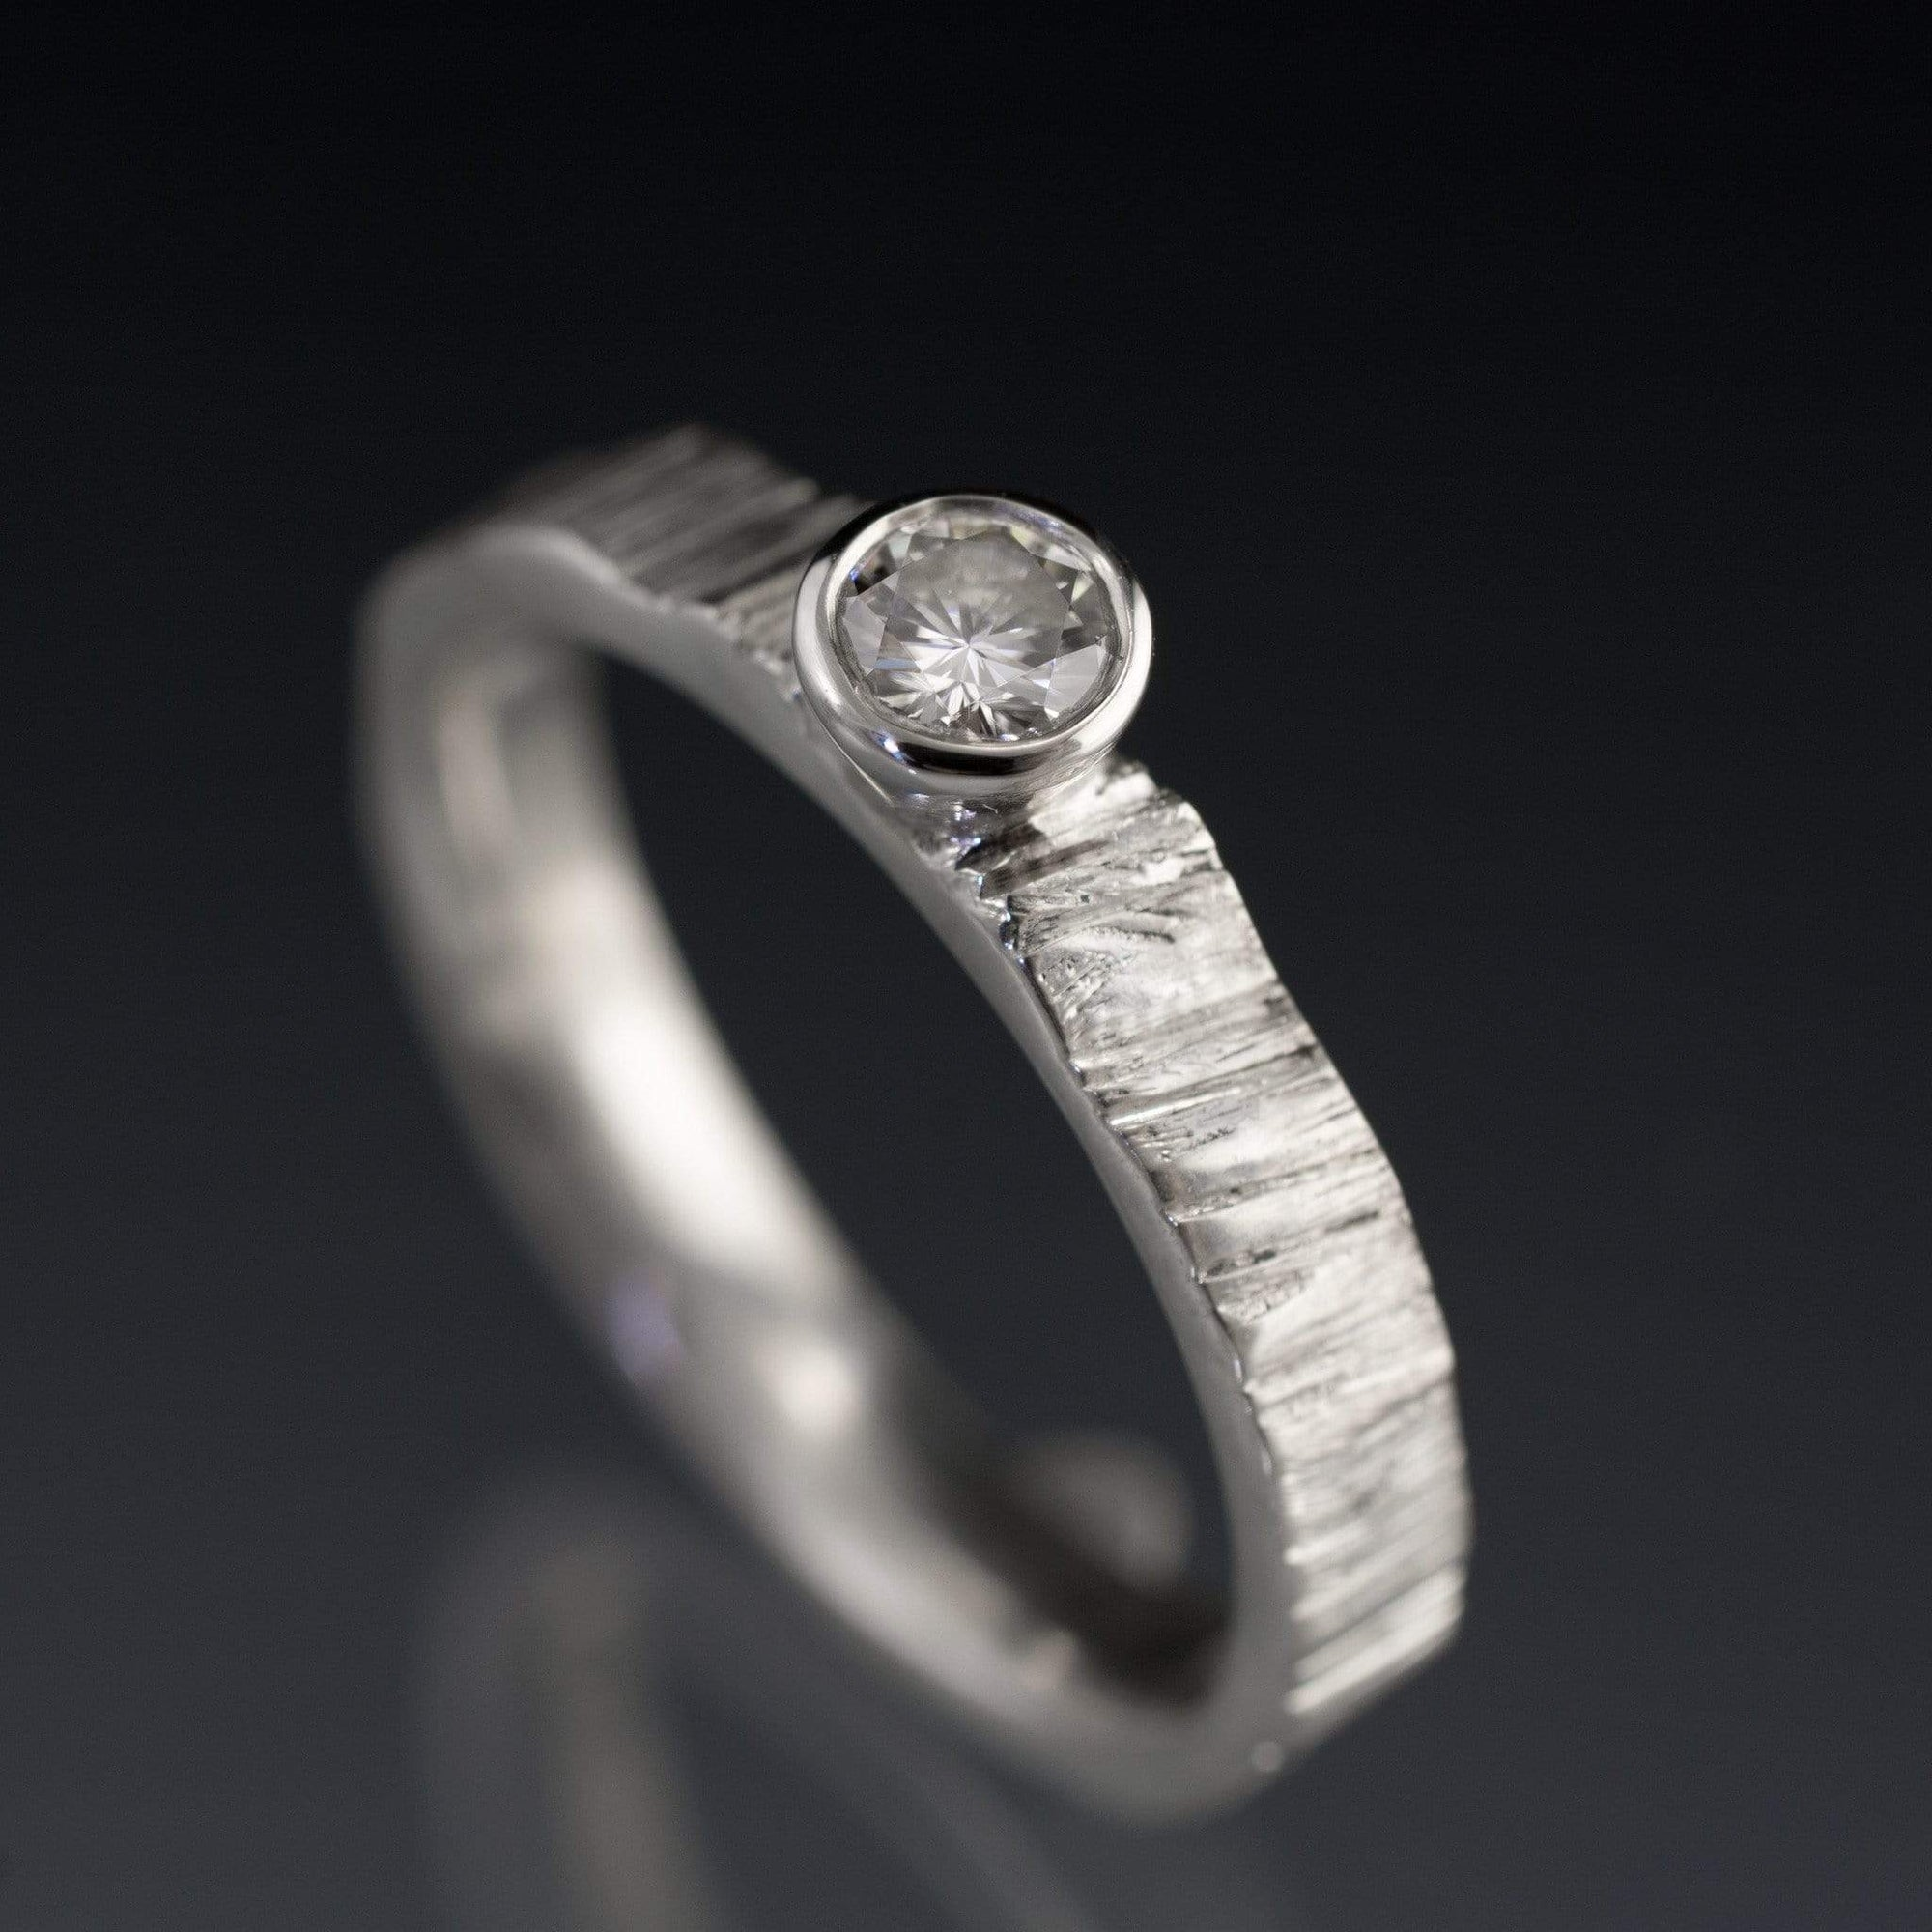 Moissanite Round Bezel Set Saw Cut Textured Solitaire Wedding or Engagement Ring